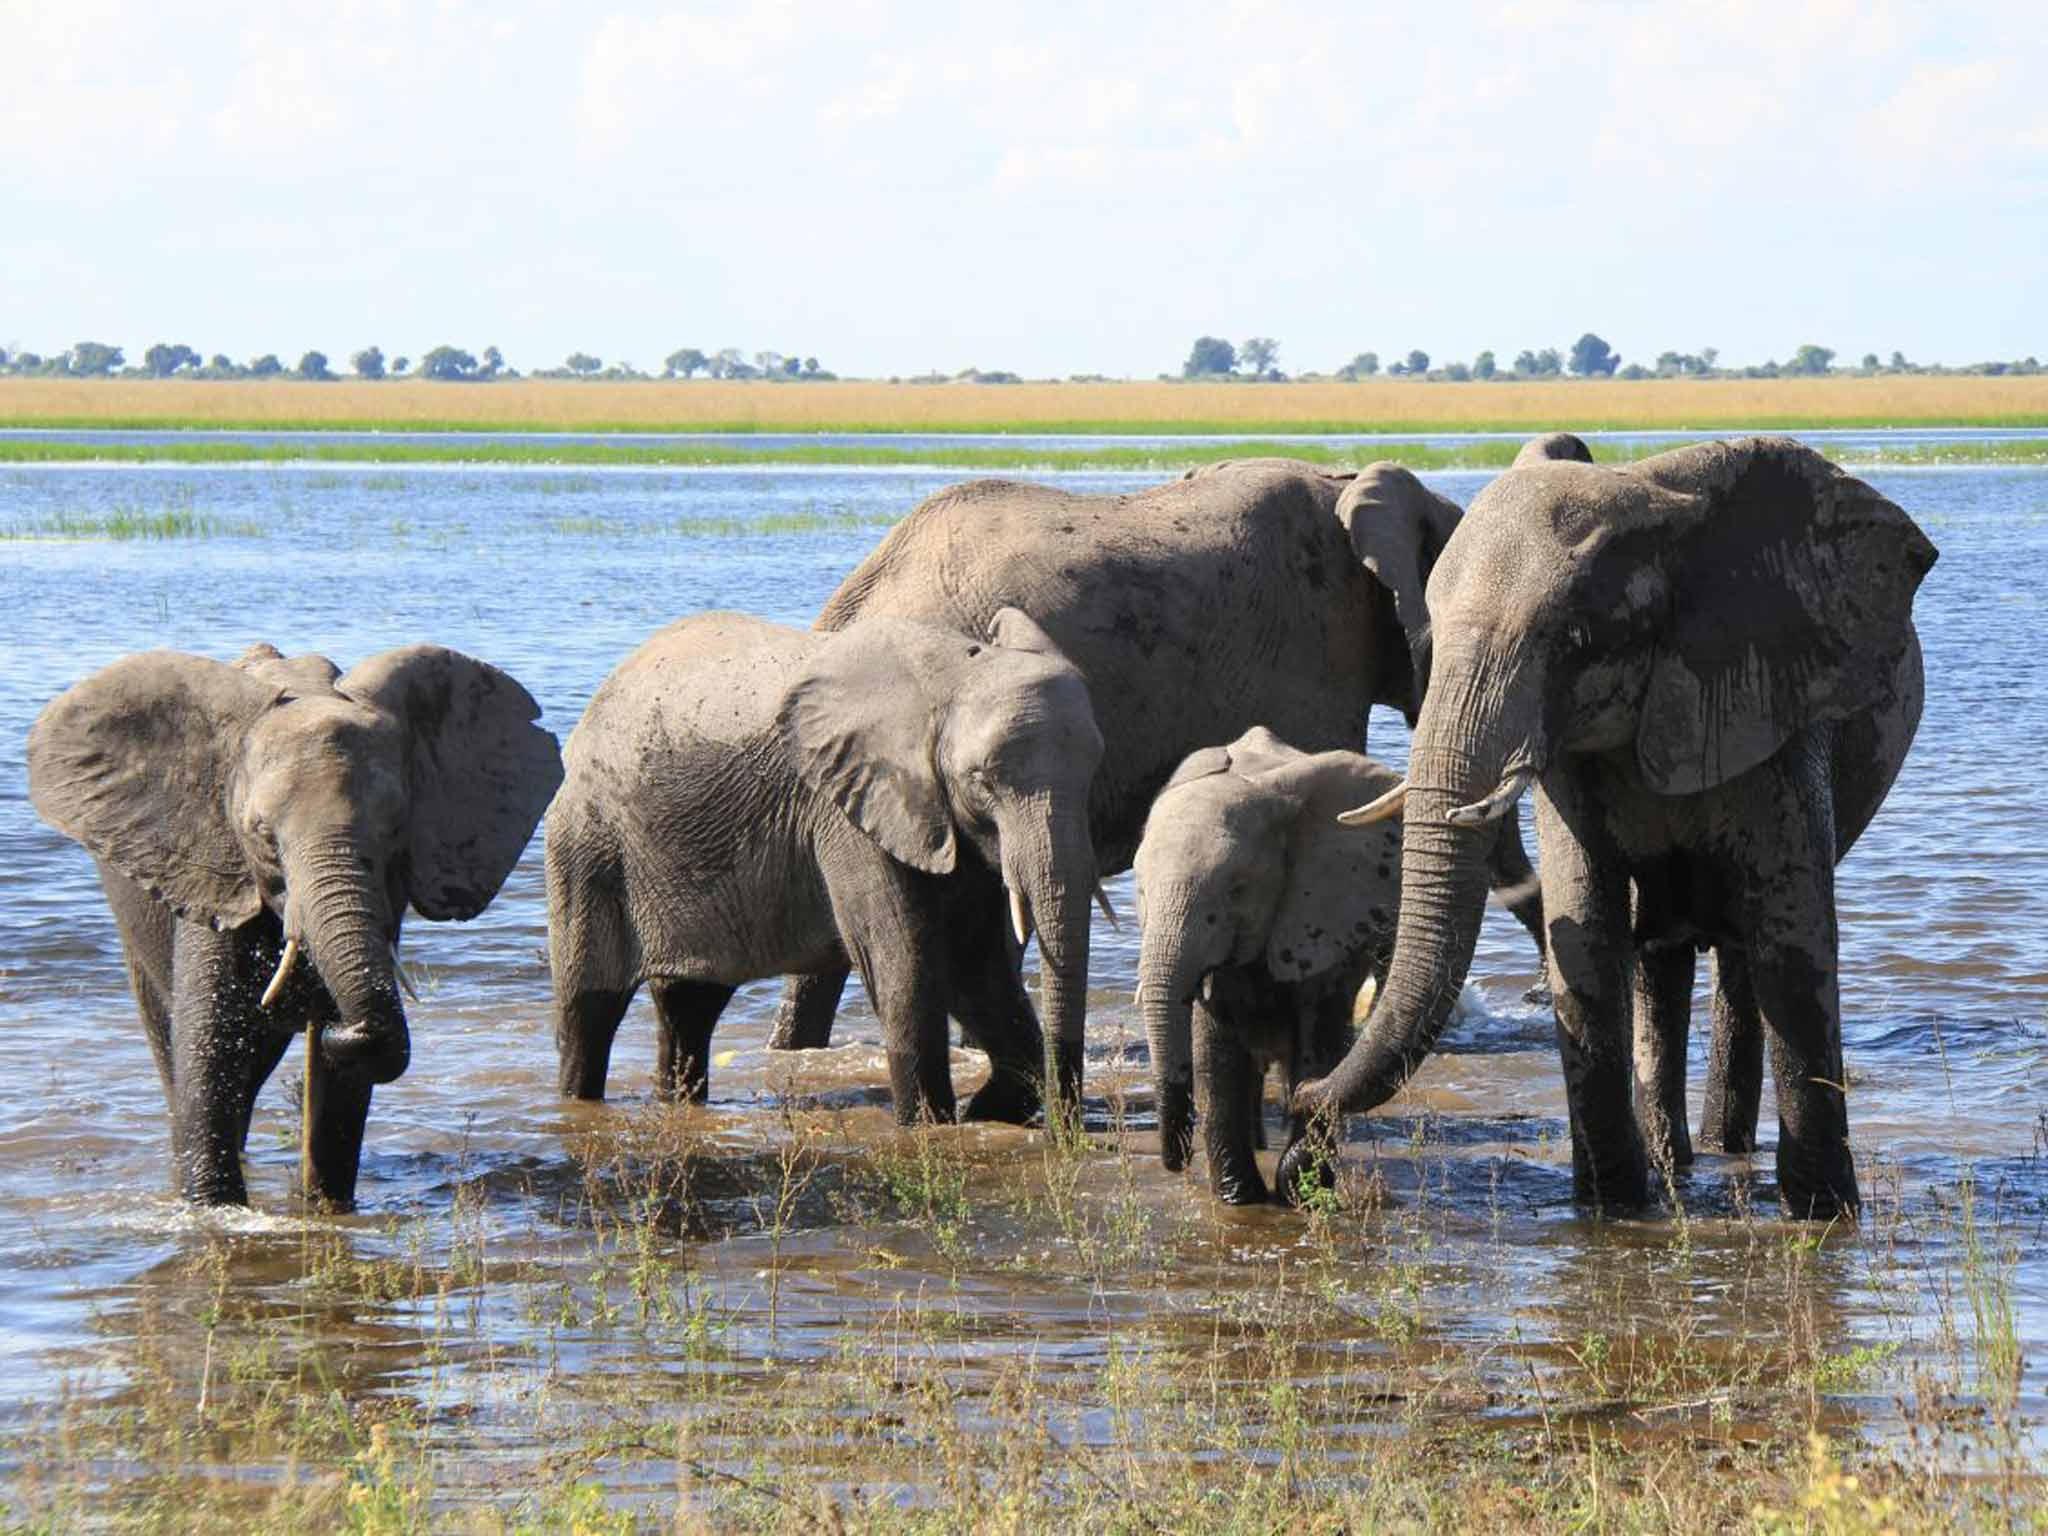 How two elephants measured their trunks 11